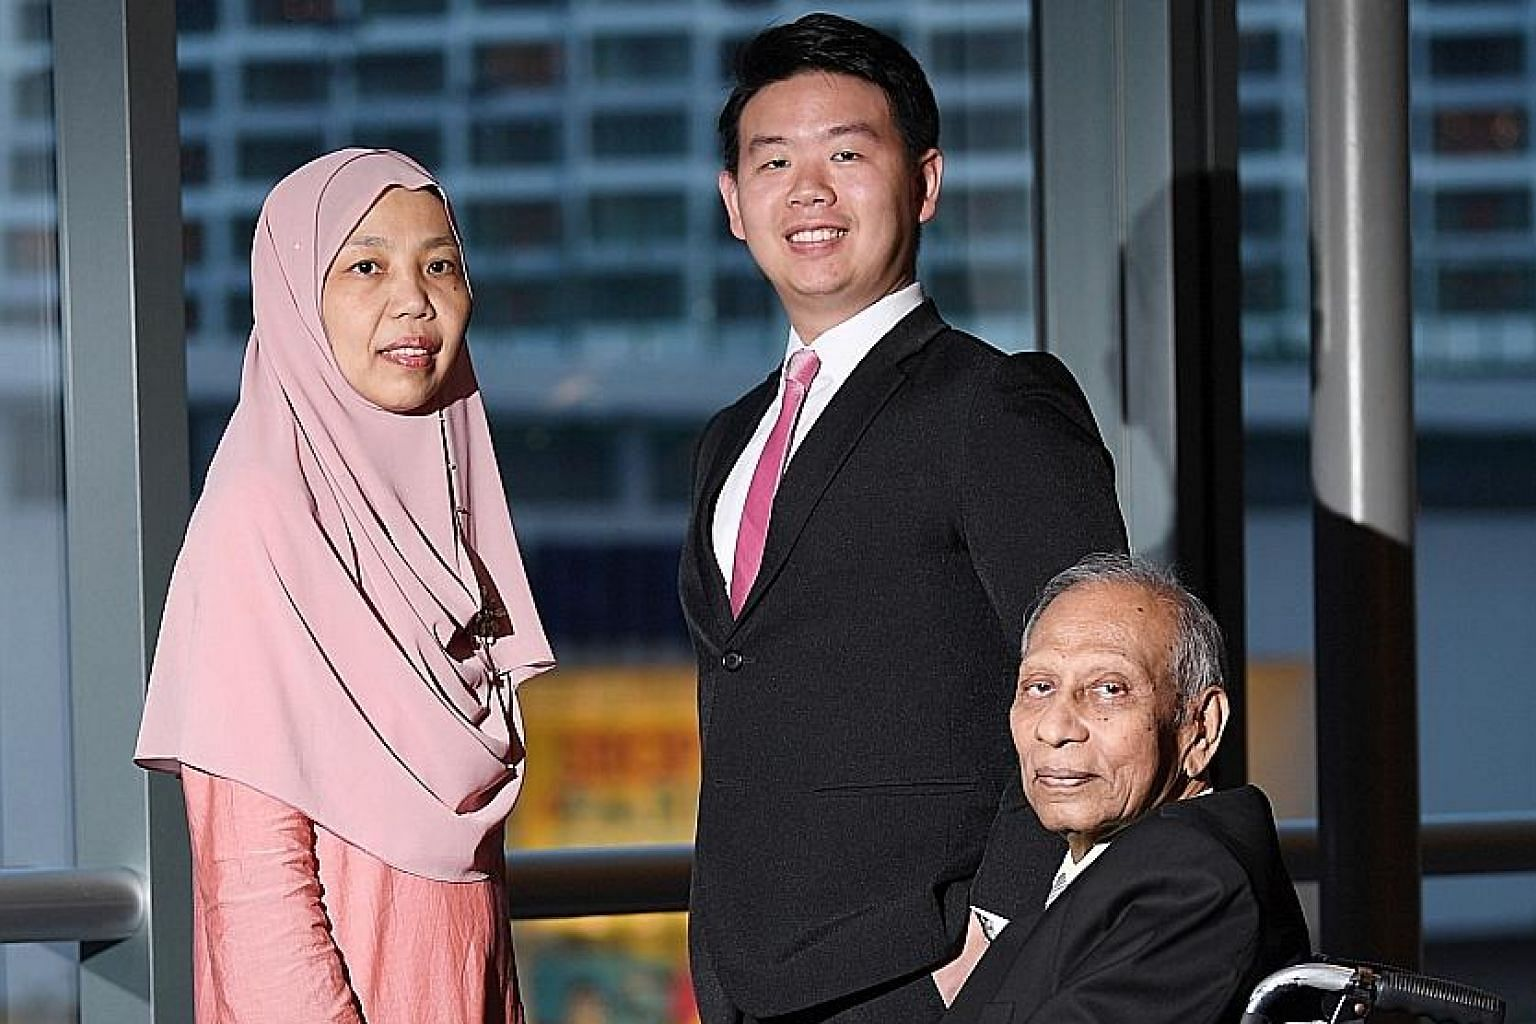 Madam Kamaria Djorimi, Mr Benjamin Chua and Mr G. Anthony Samy are among some 150 volunteer mediators with the Community Mediation Centre, which handles about 500 disputes each year.